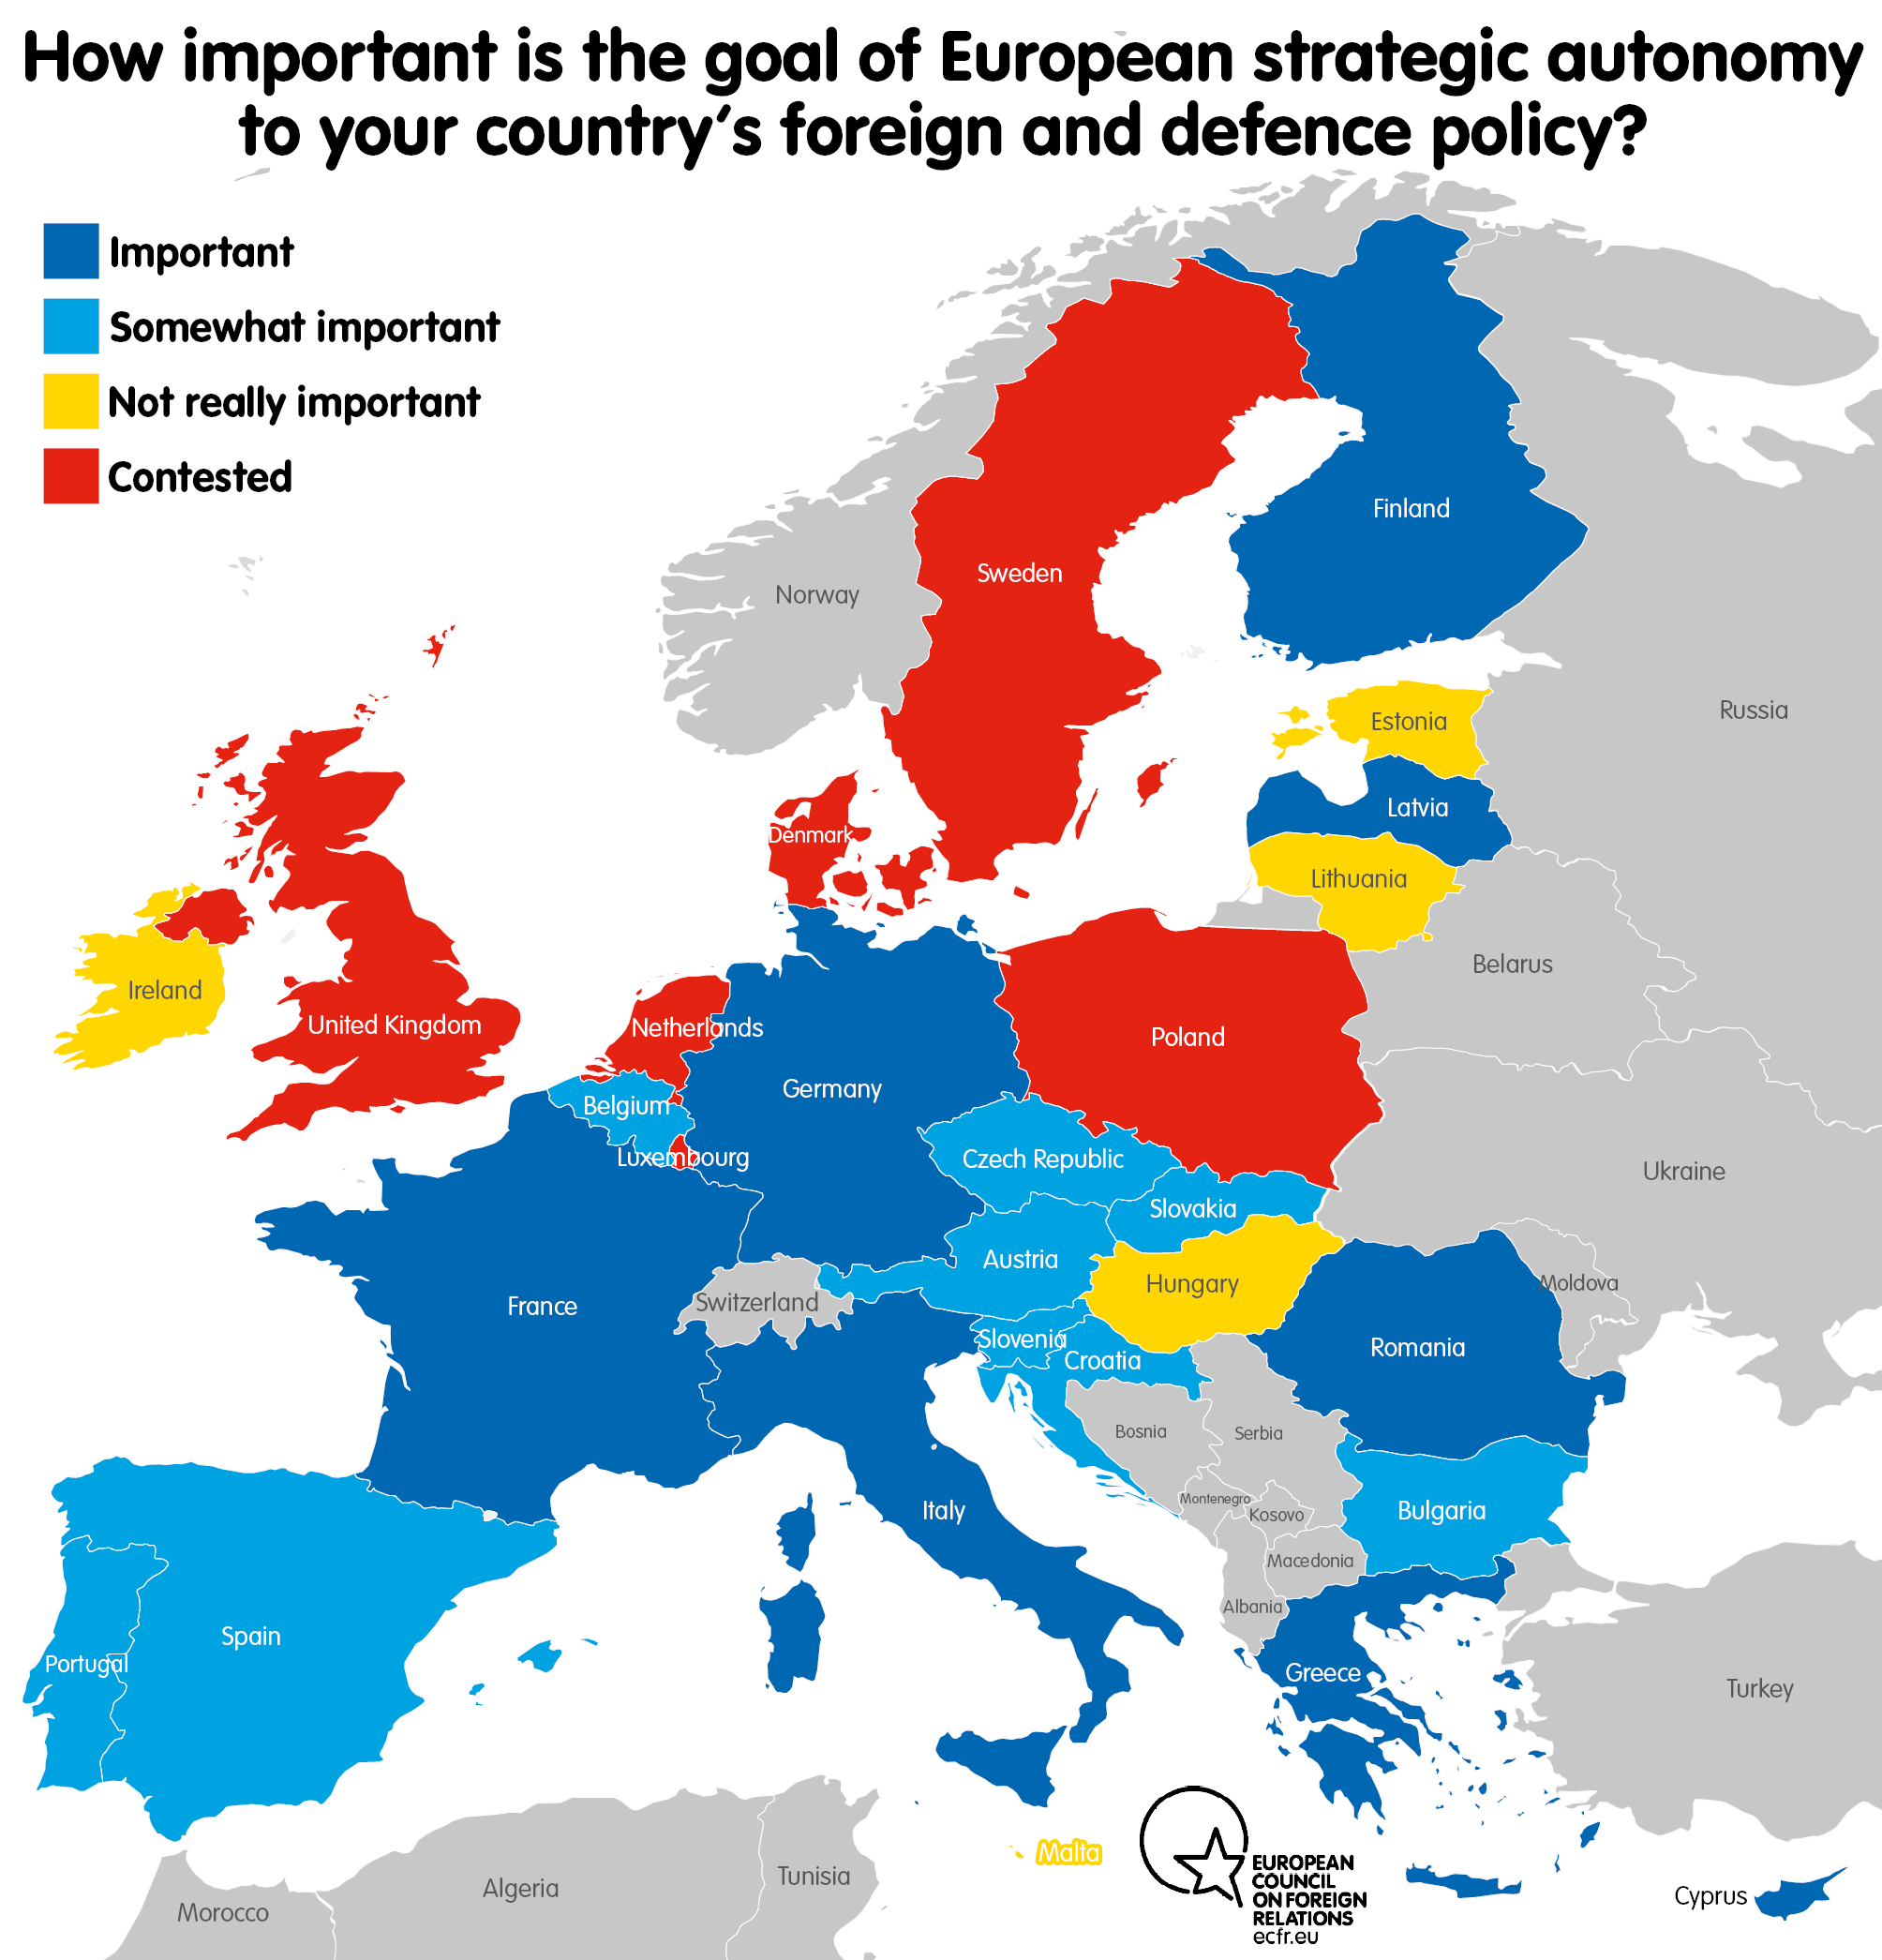 How important is the goal of European strategic autonomy